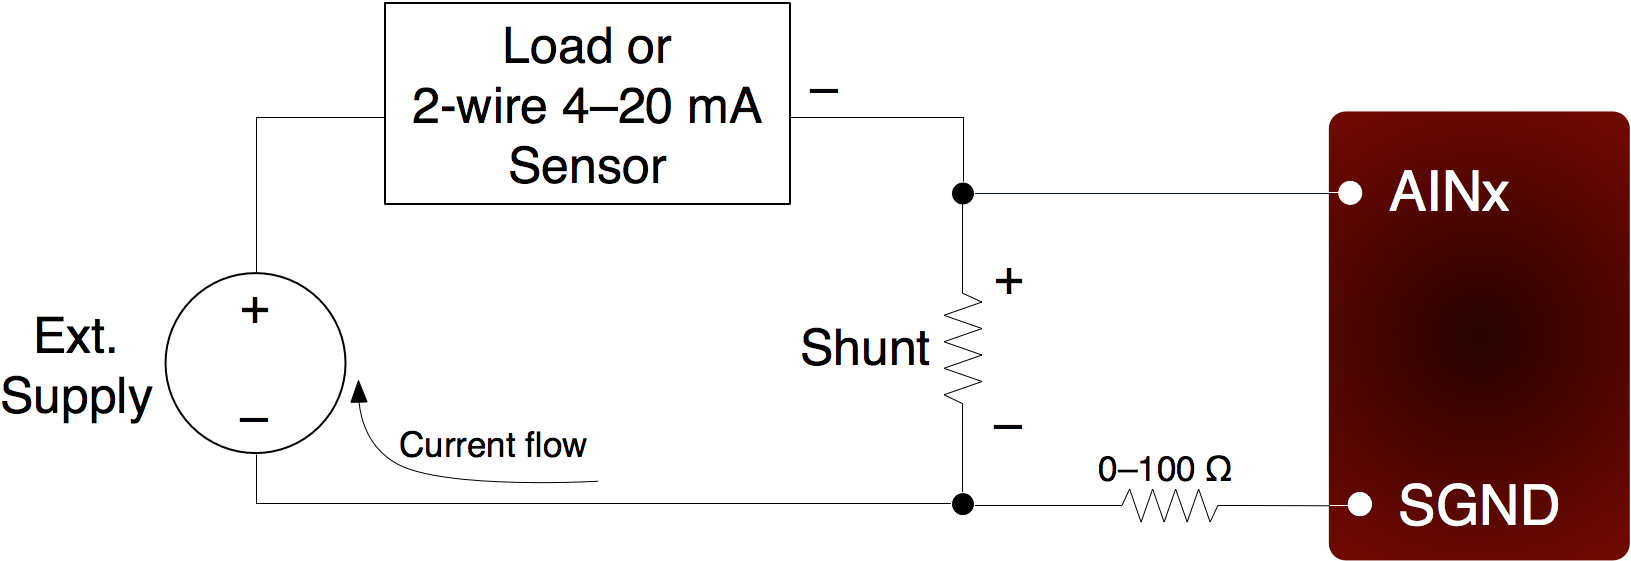 Measuring Current 4 20ma Or Other App Note Labjack